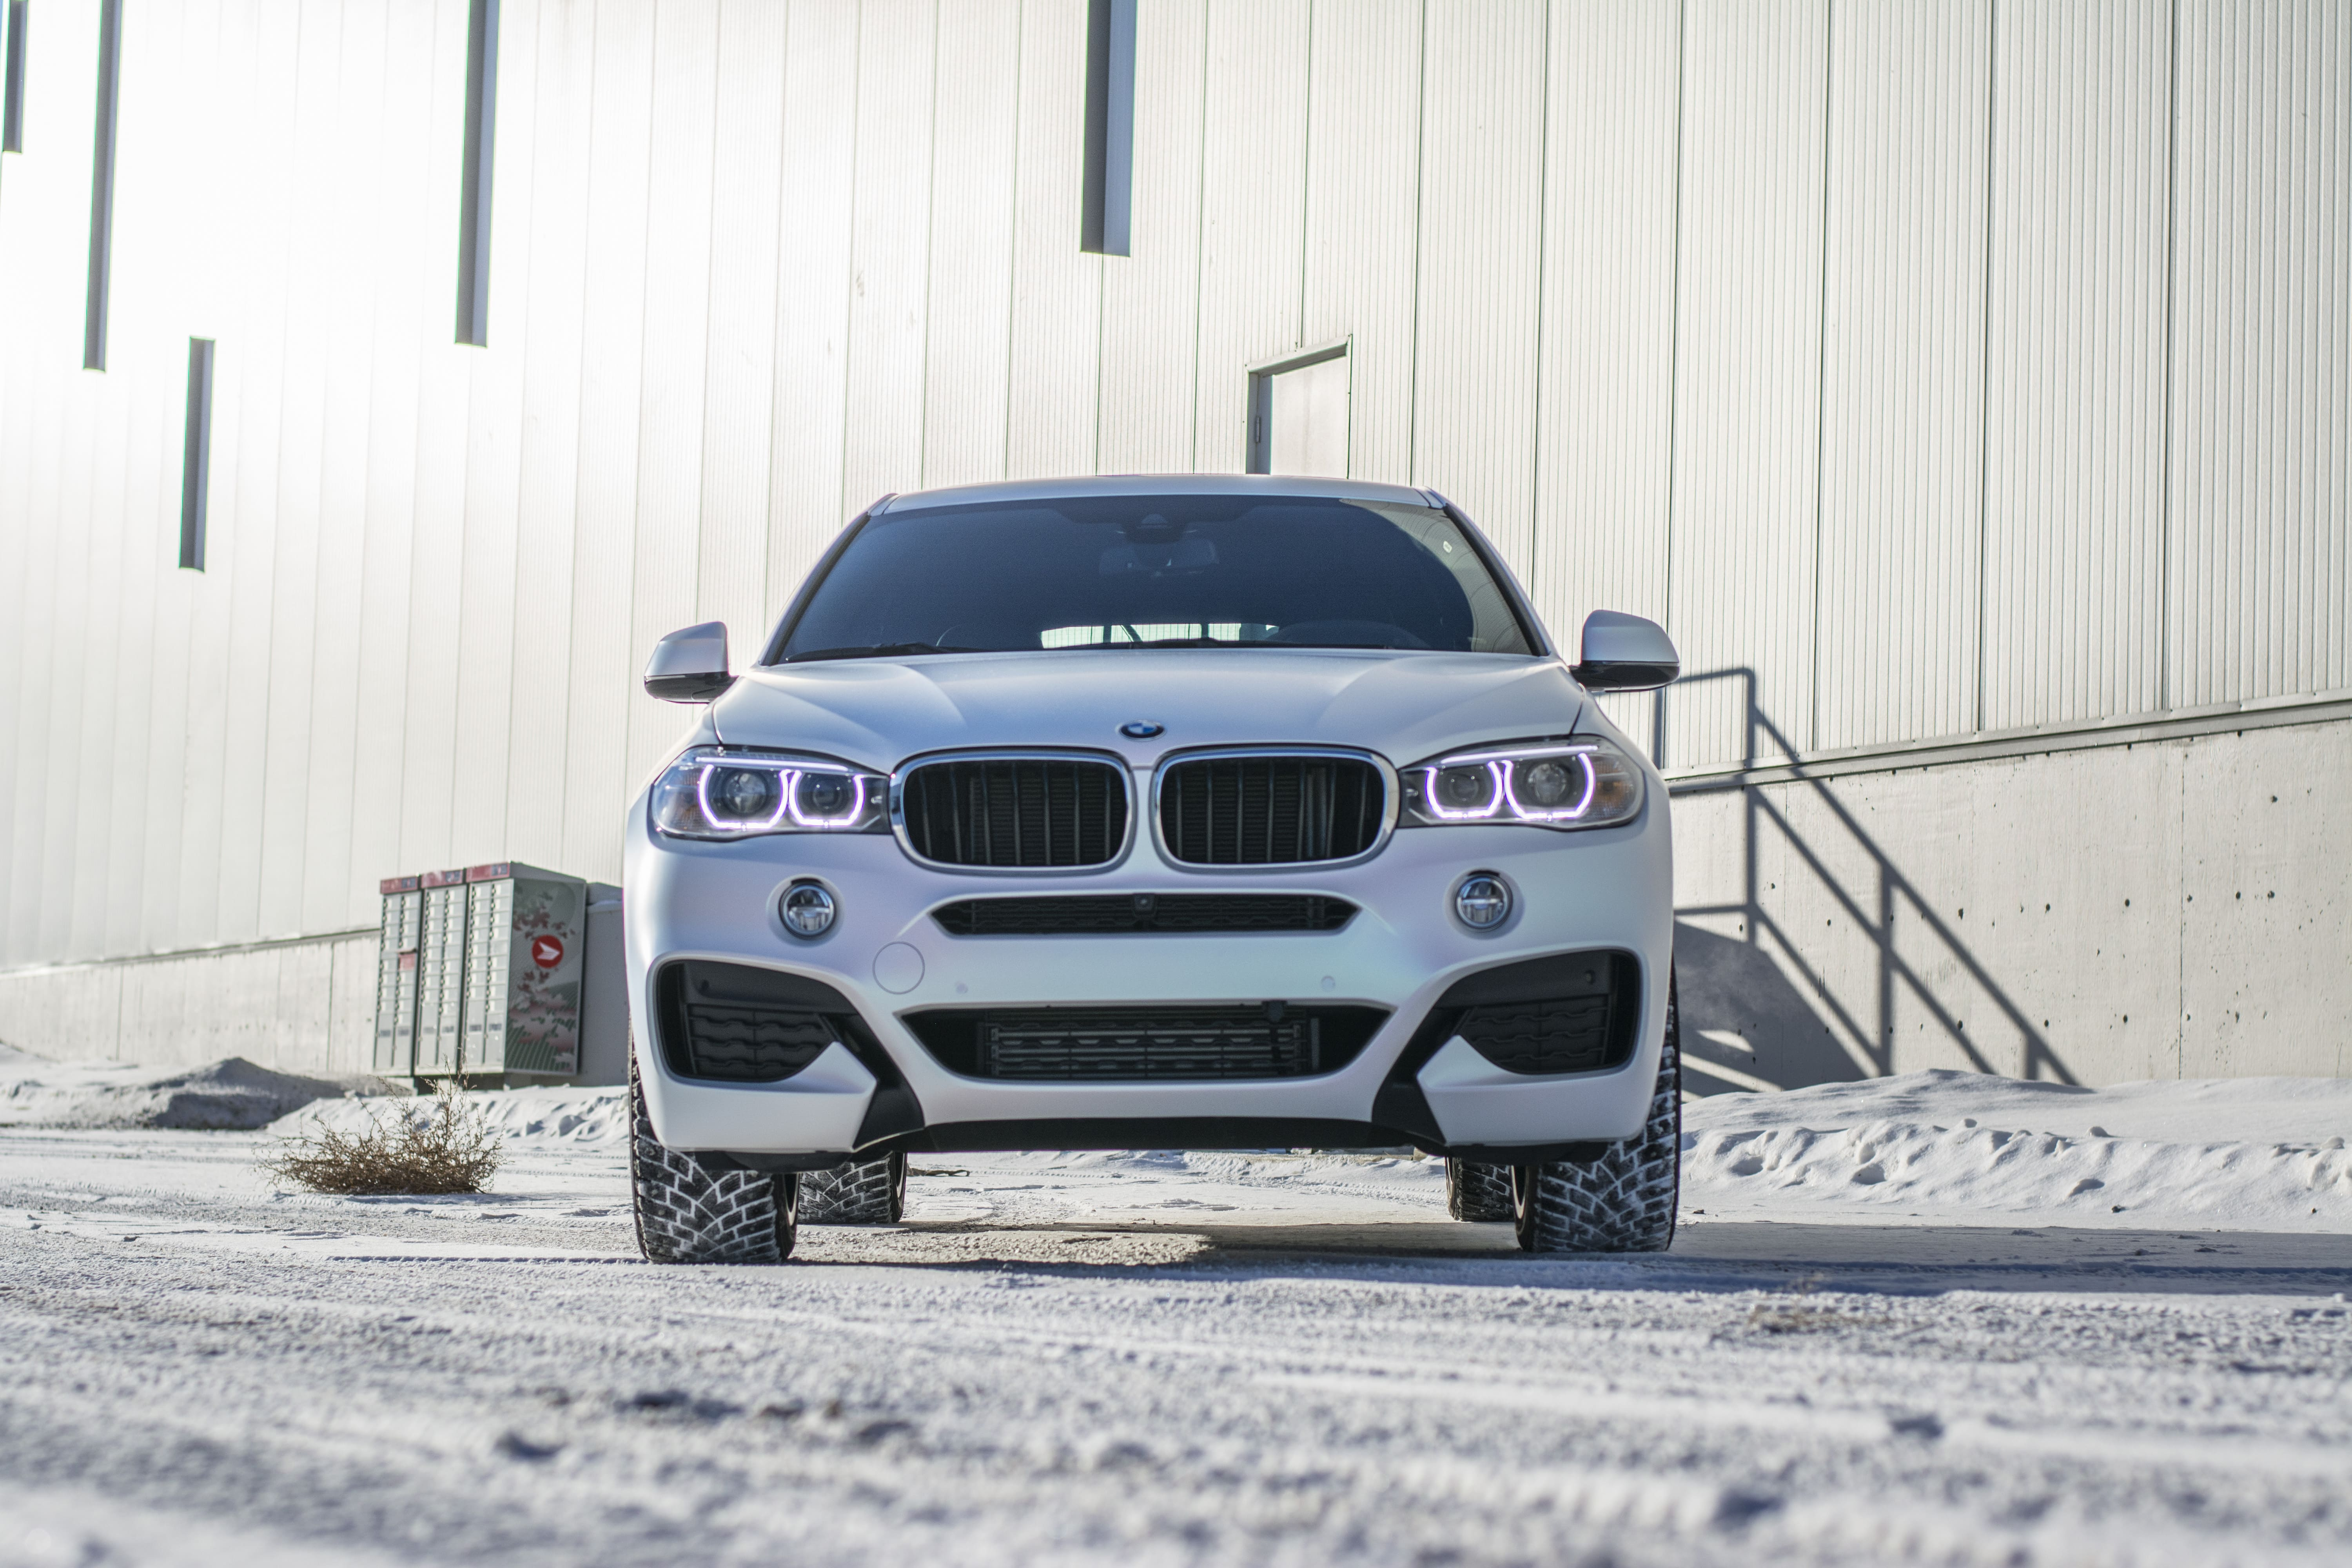 BMW X8 wrapped in KPMF Matte Aurora Pearl from front.